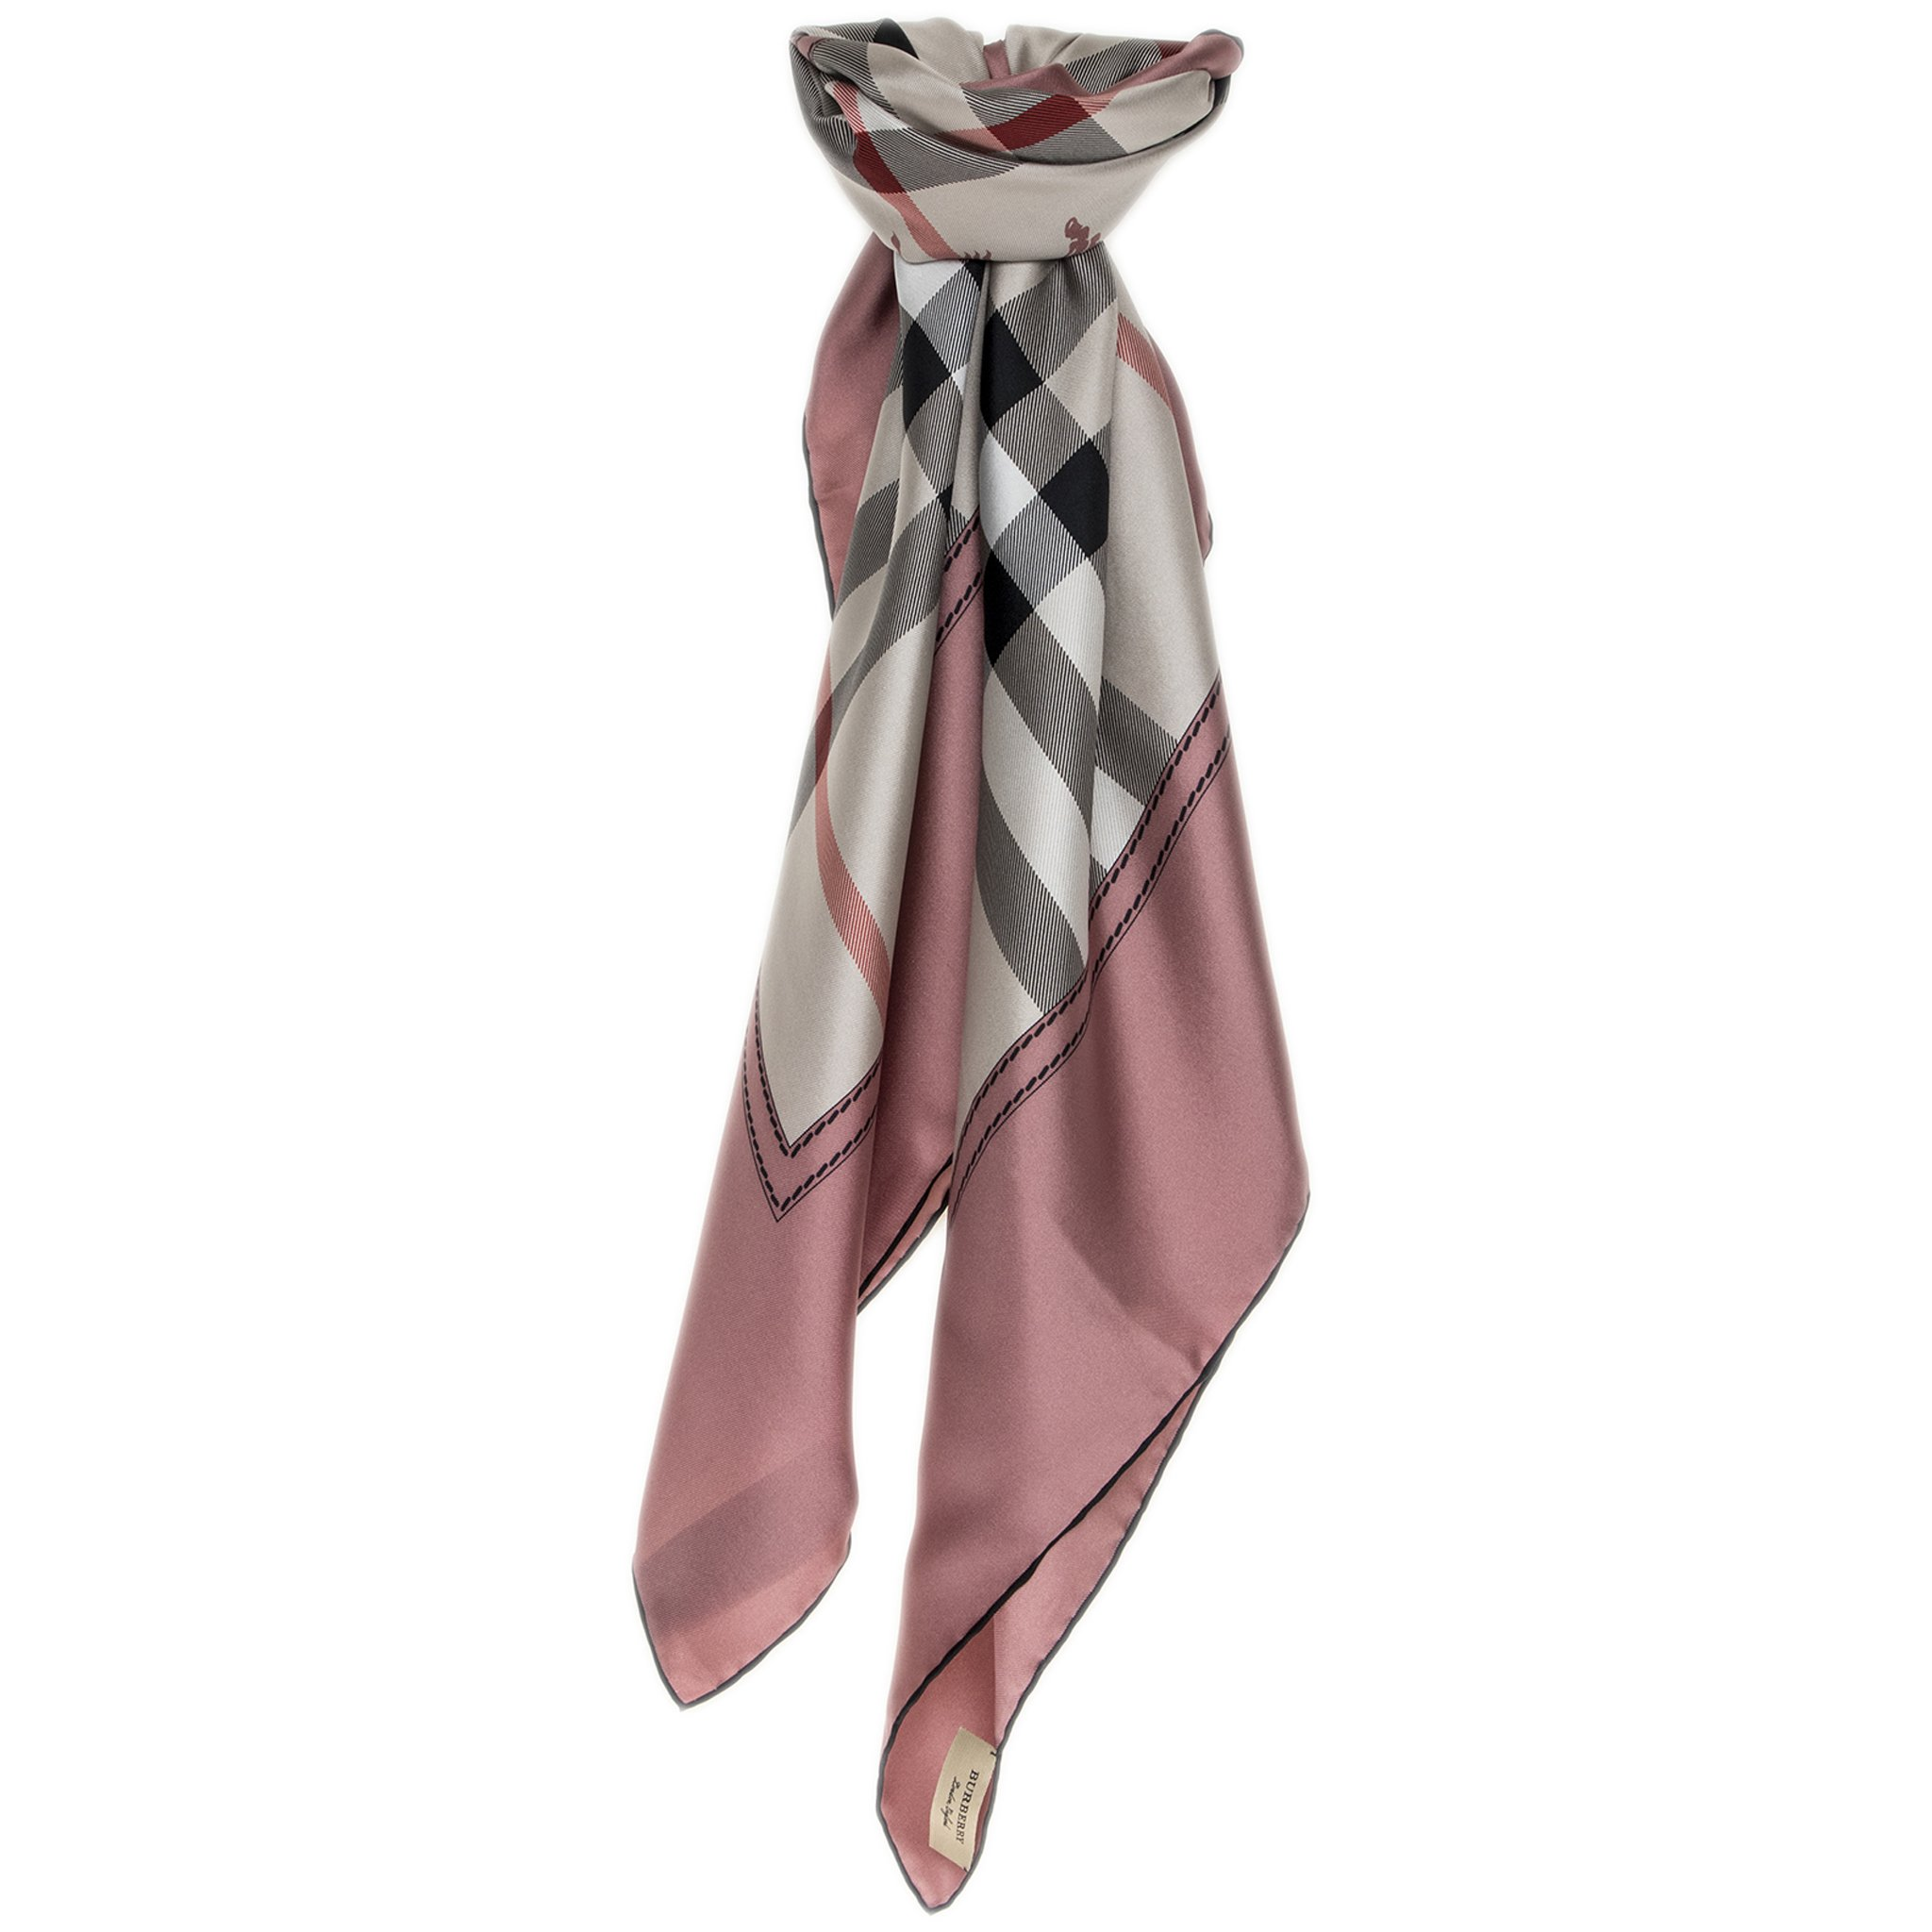 Burberry Women's House Check Scarf Pink